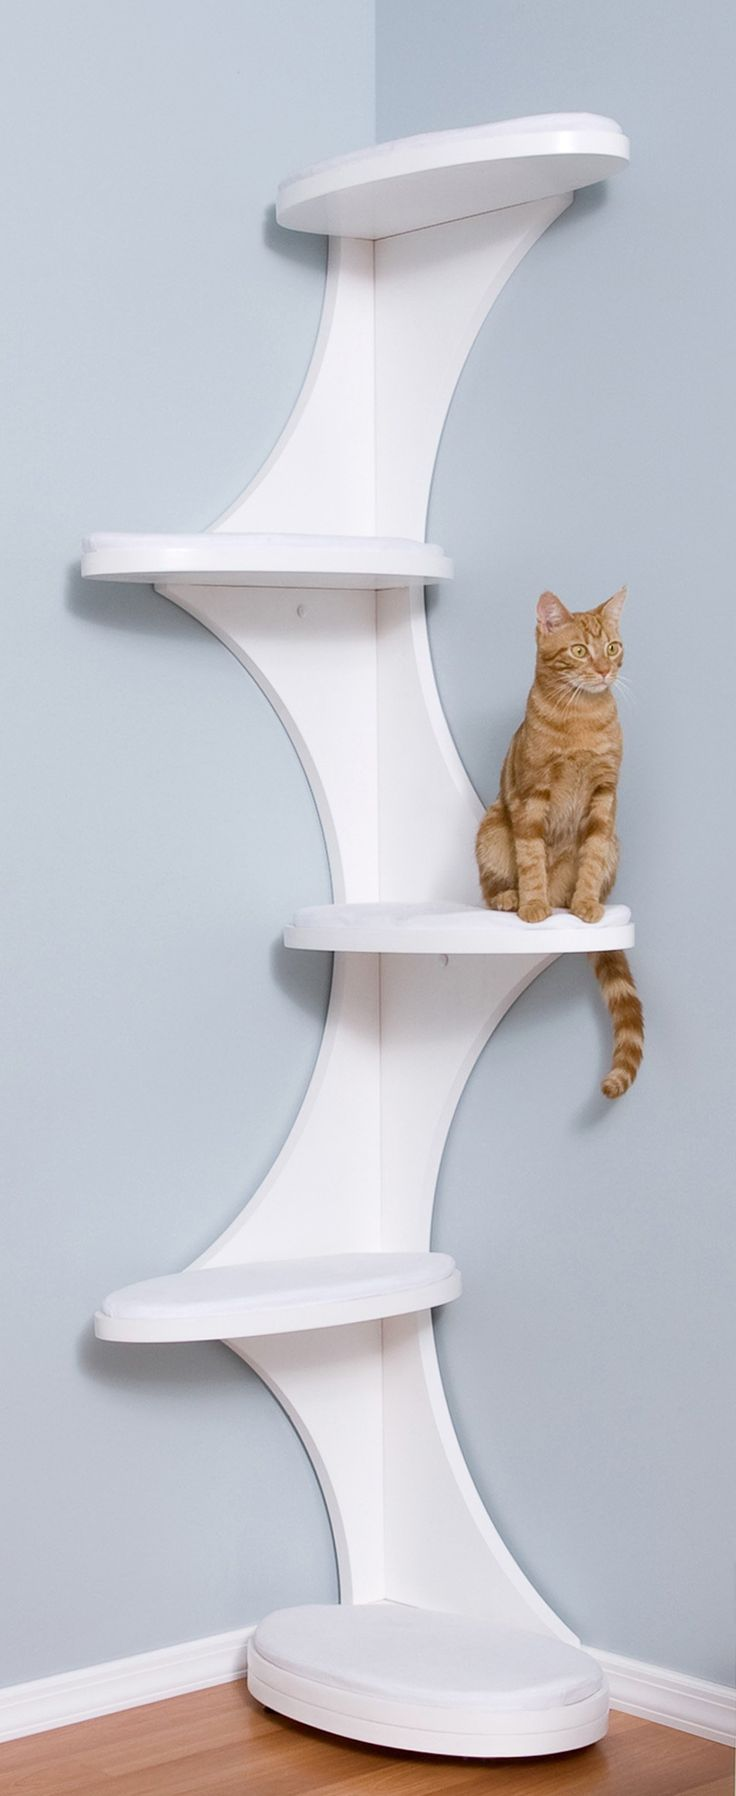 Amazon.com : The Refined Feline Catemporary Cat Corner in White : Cat Beds : Pet Supplies